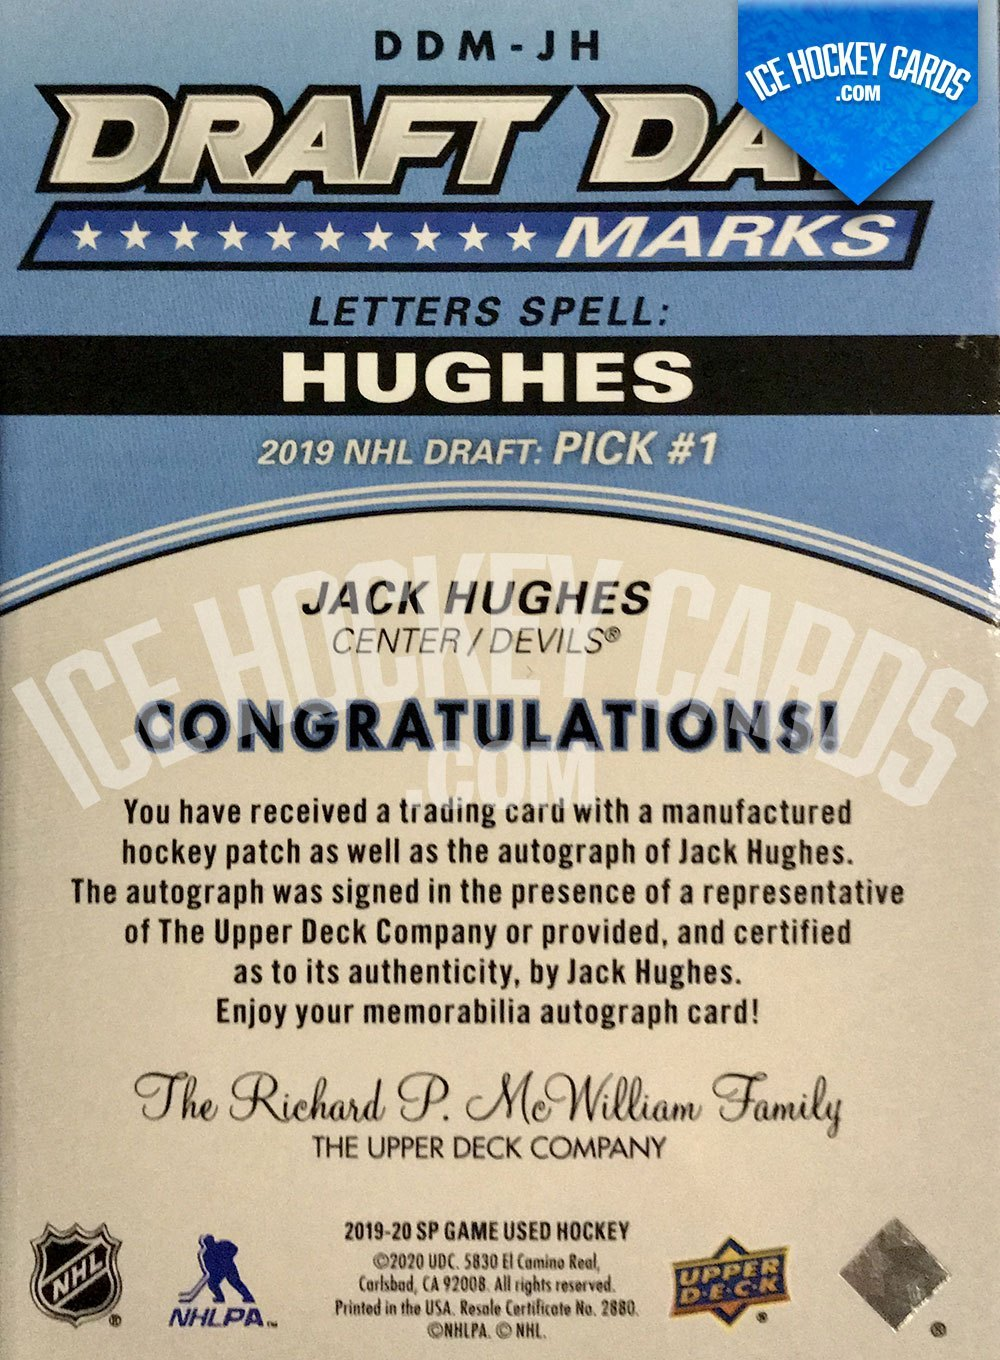 Upper Deck - SP Game Used Hockey 2019-20 - Jack Hughes Auto Patch Draft Day Marks - 2019 NHL Draft Pick #1 Rookie Card back RARE